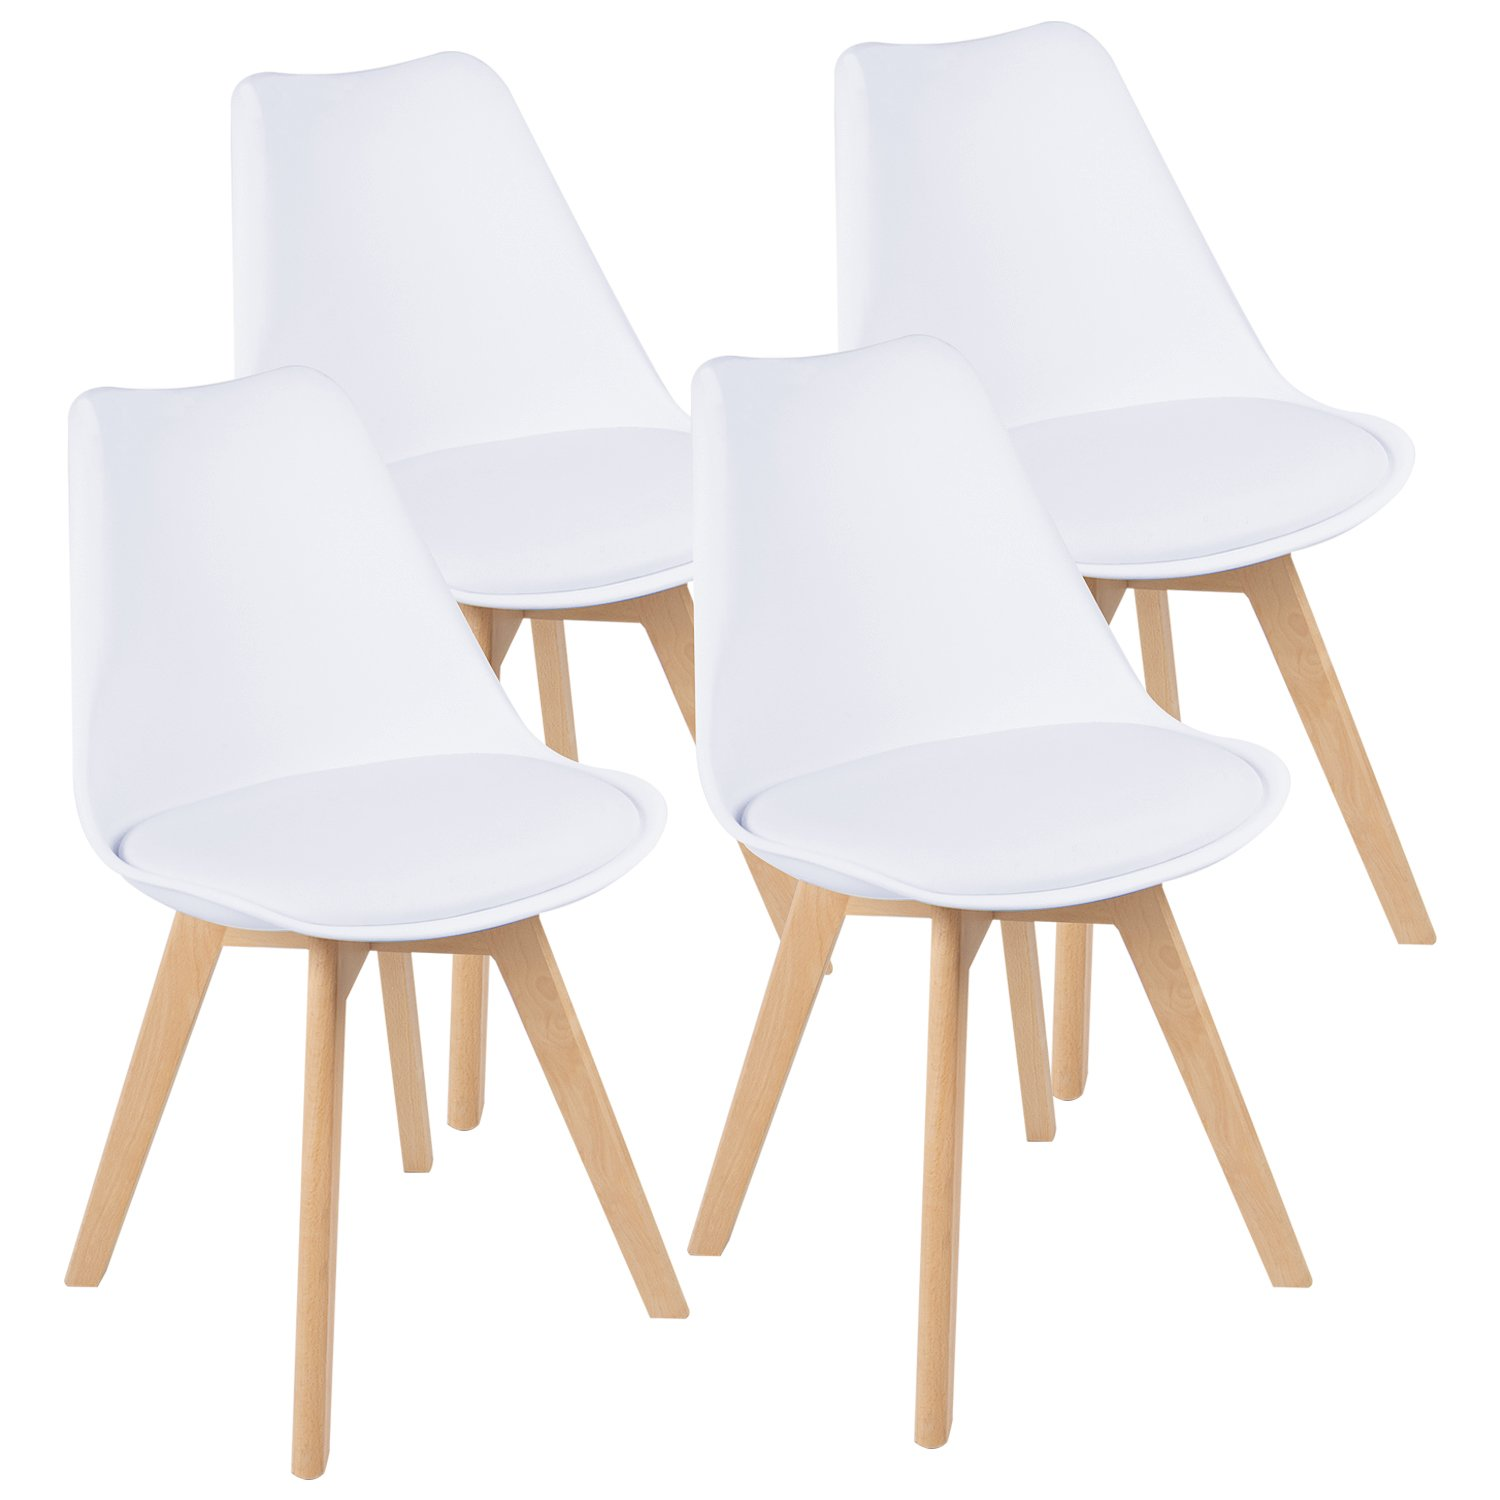 JUMMICO Mid Century Modern Style Kitchen Dining Chair Wood Assembled Legs With Soft Padded Shell Dining Side Chair Suitable For Living Room Bedroom, Armless Tulip Chair Set of 4 (Upholstered White)